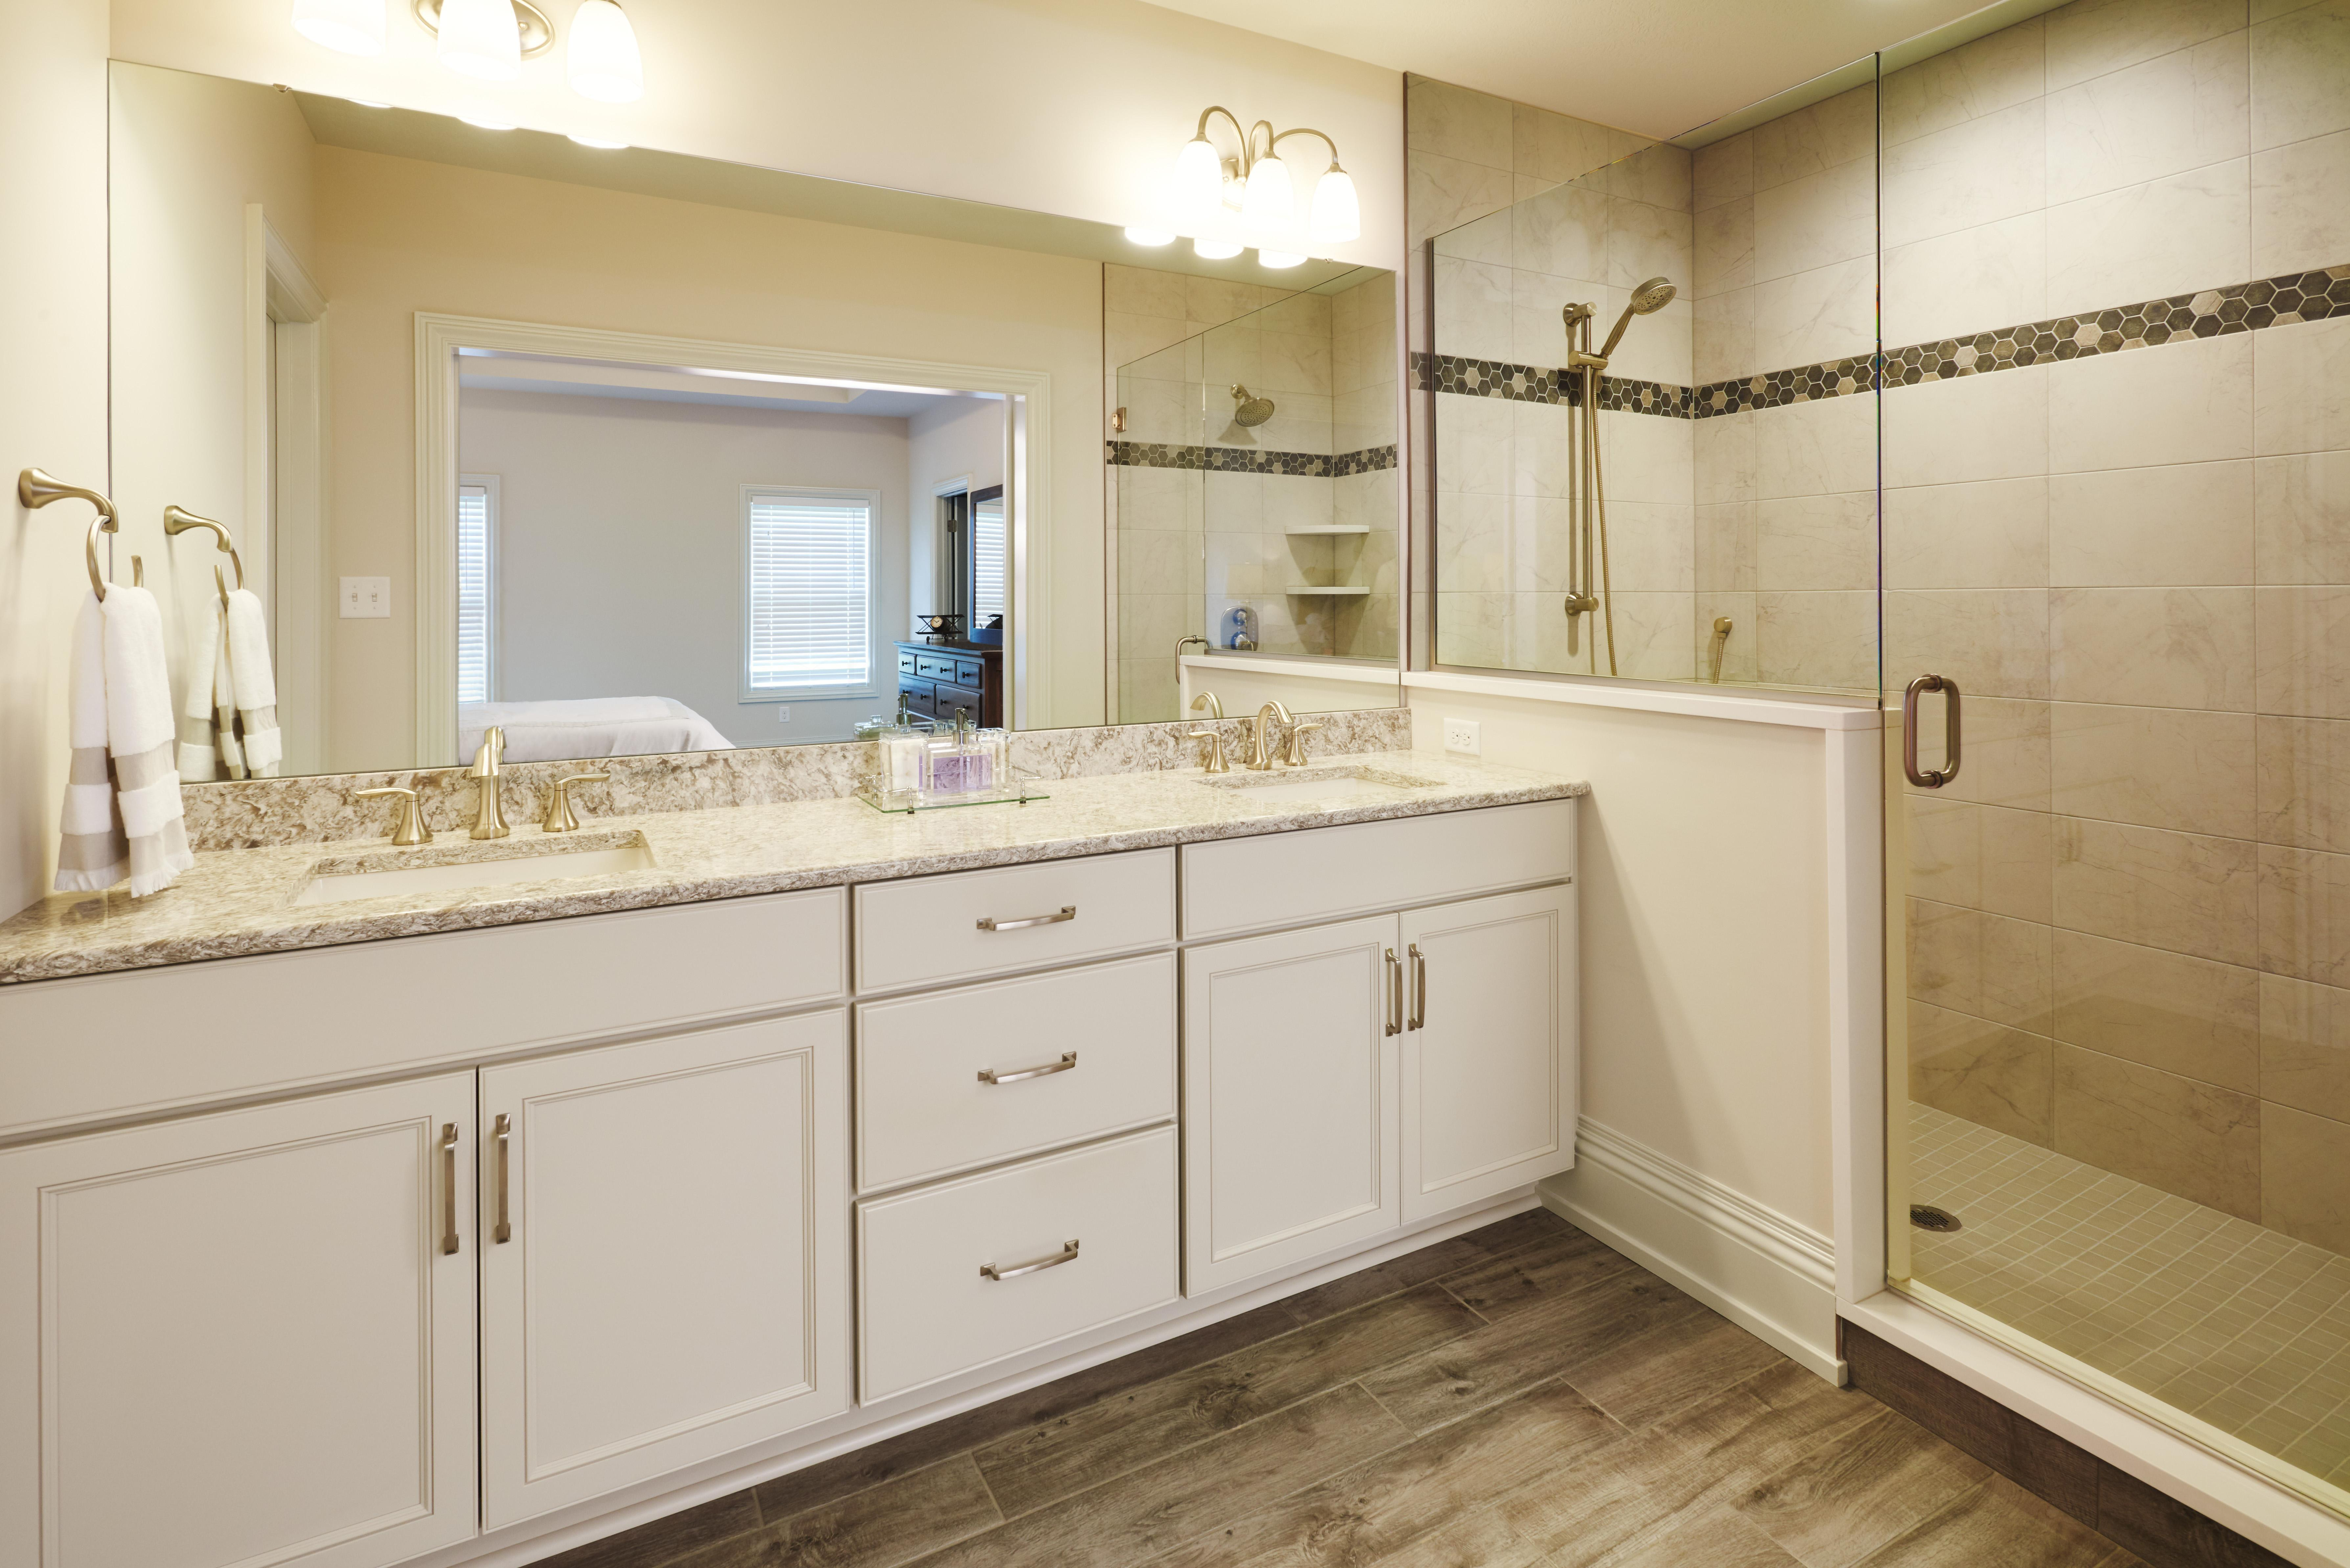 Bathroom featured in the Monteverdi By Eddy Homes in Pittsburgh, PA